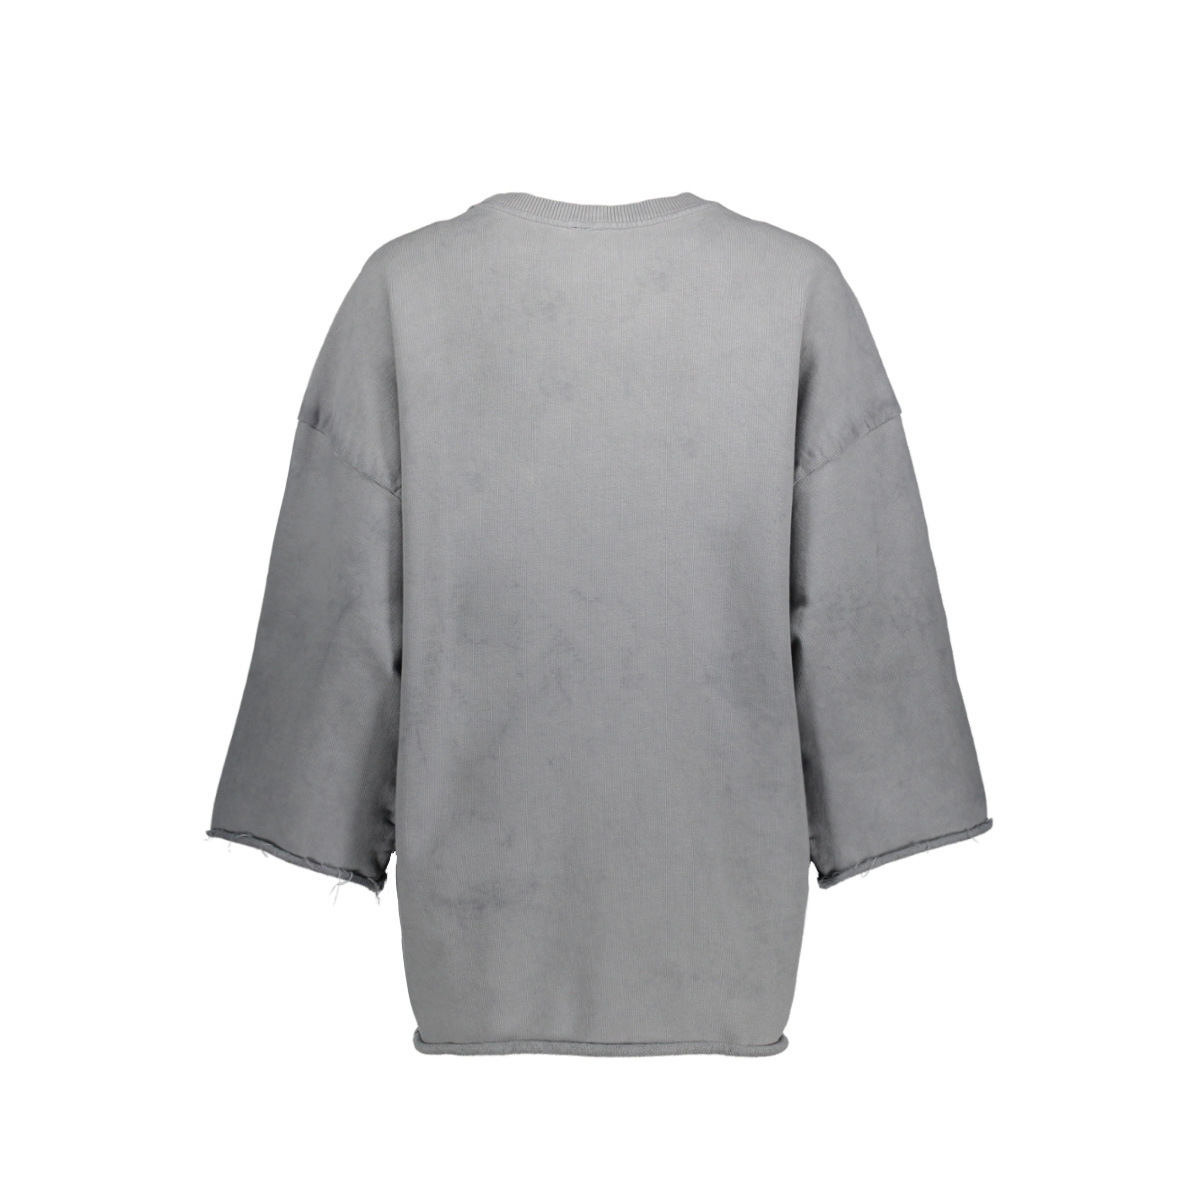 20-813-7103 10 days sweater soft grey